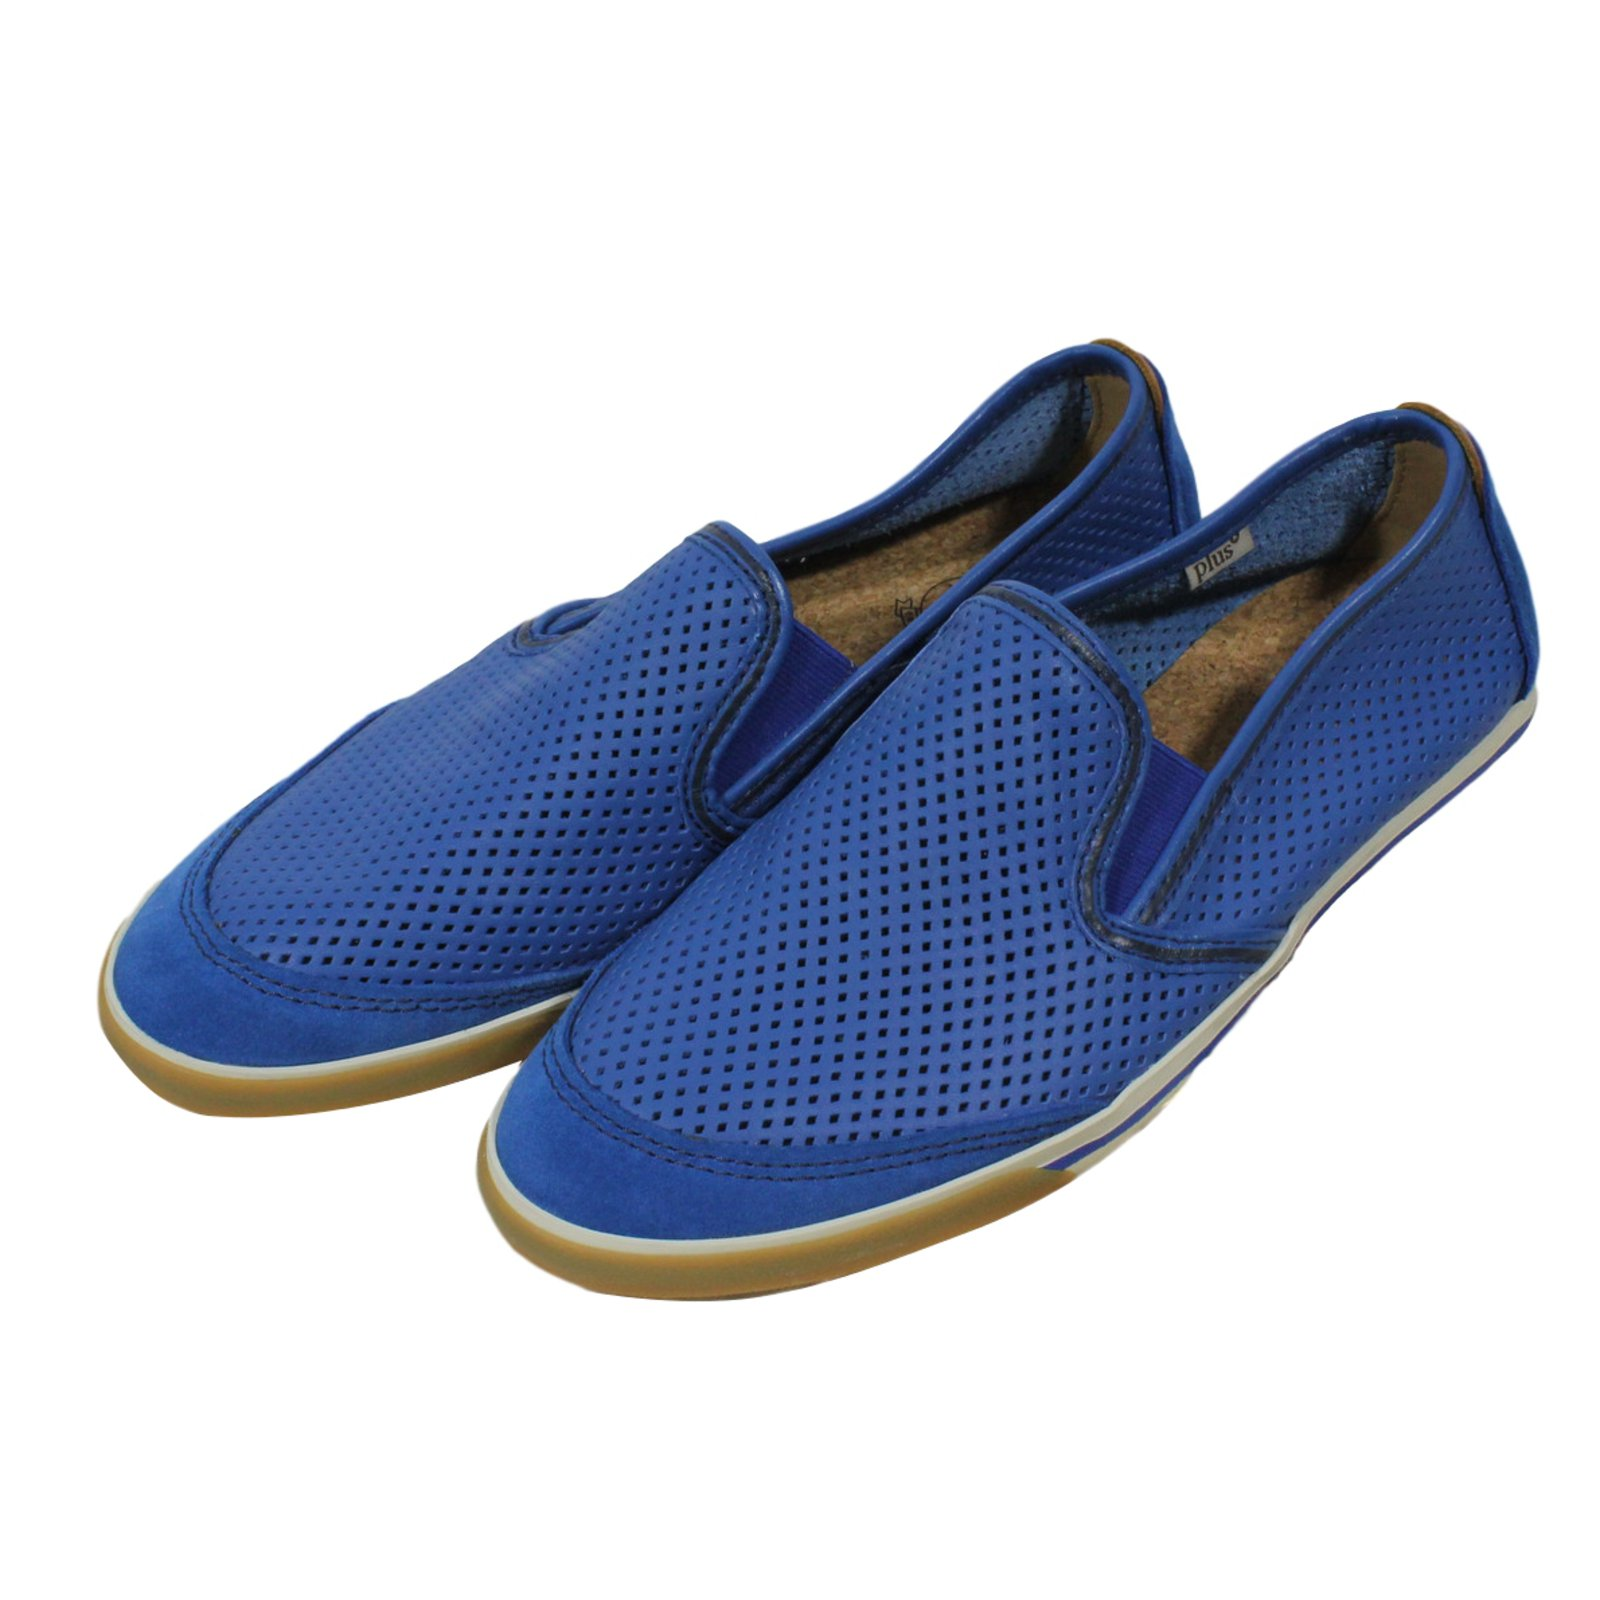 Clarks Tennis Sneakers Leather Blue ref